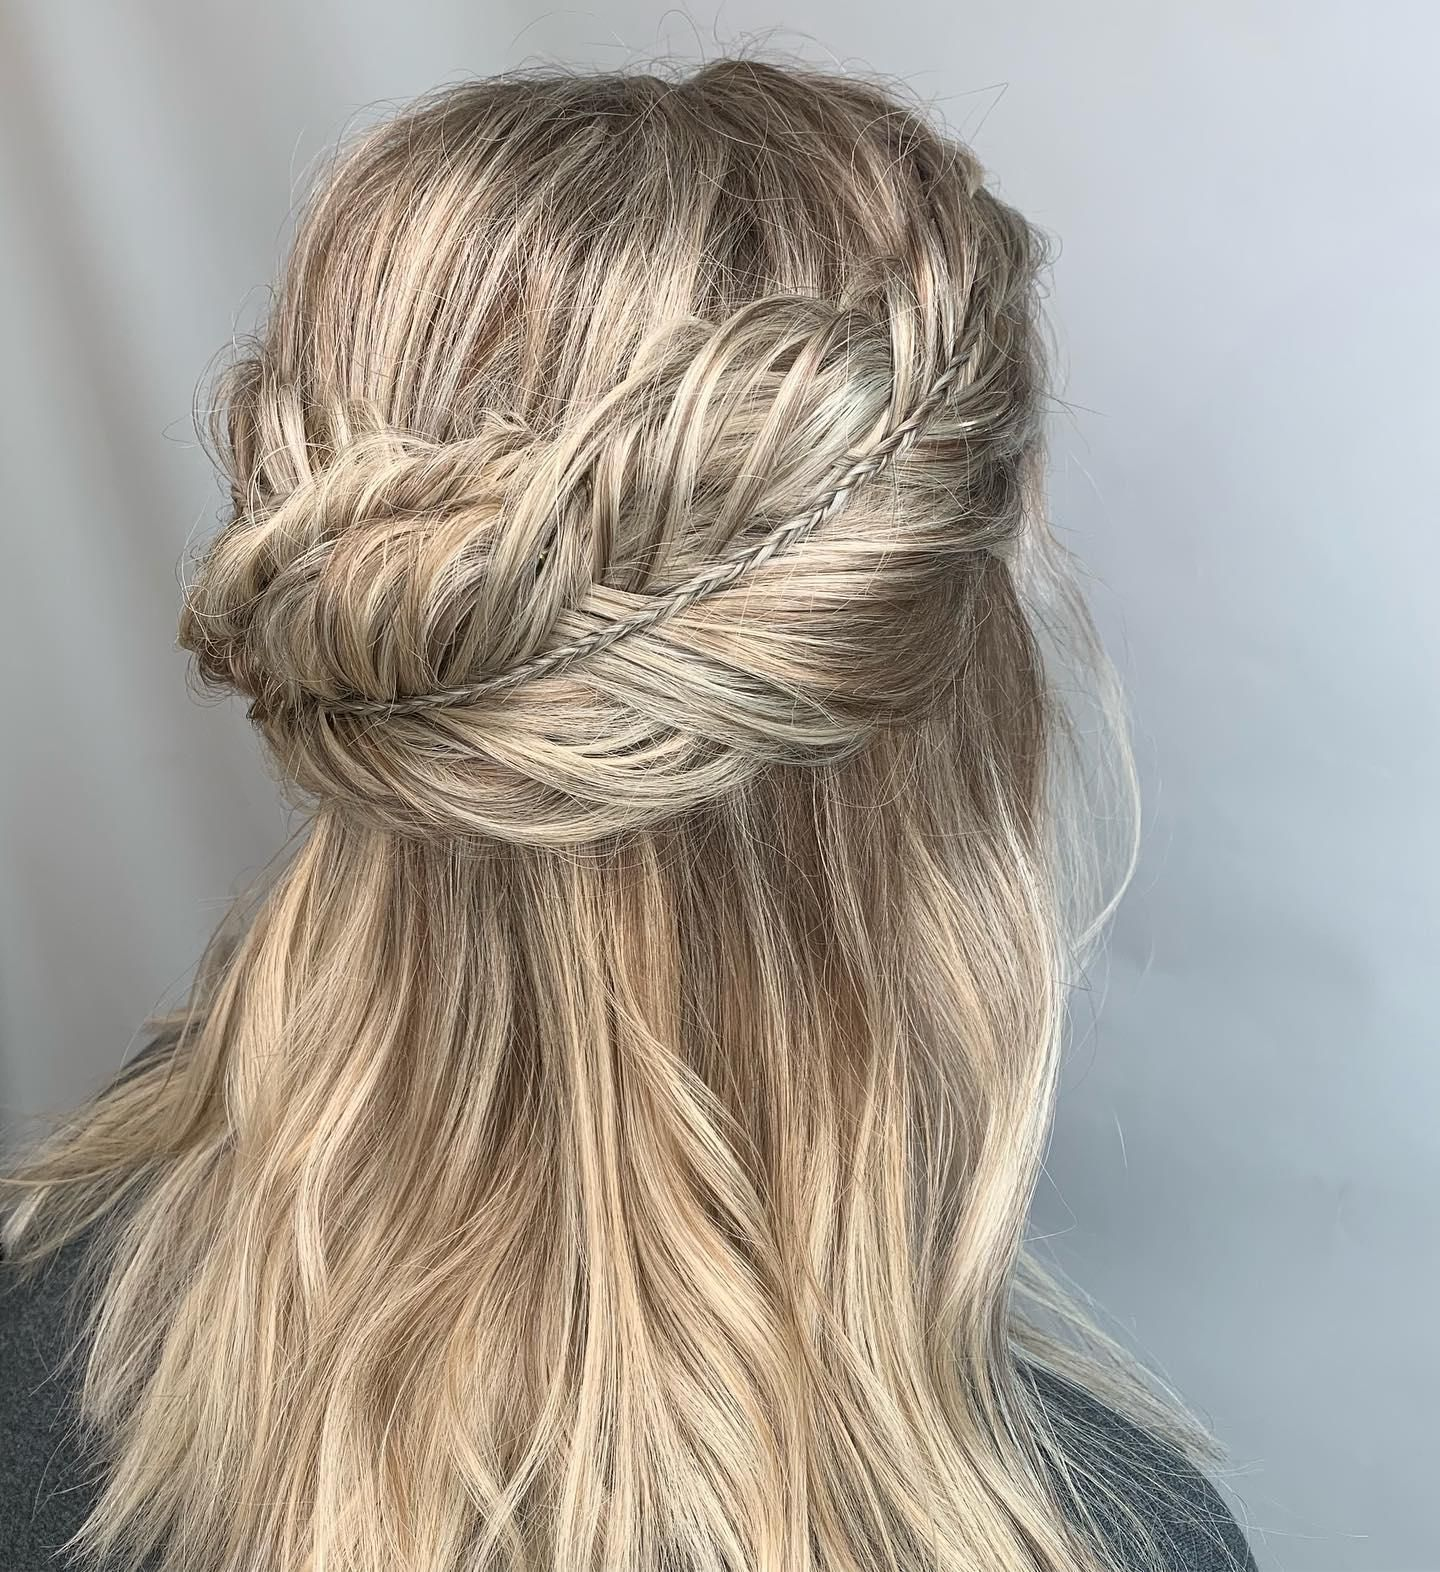 Wedding Hairstyle Near Me: Stores - Locations And Hours In 2019